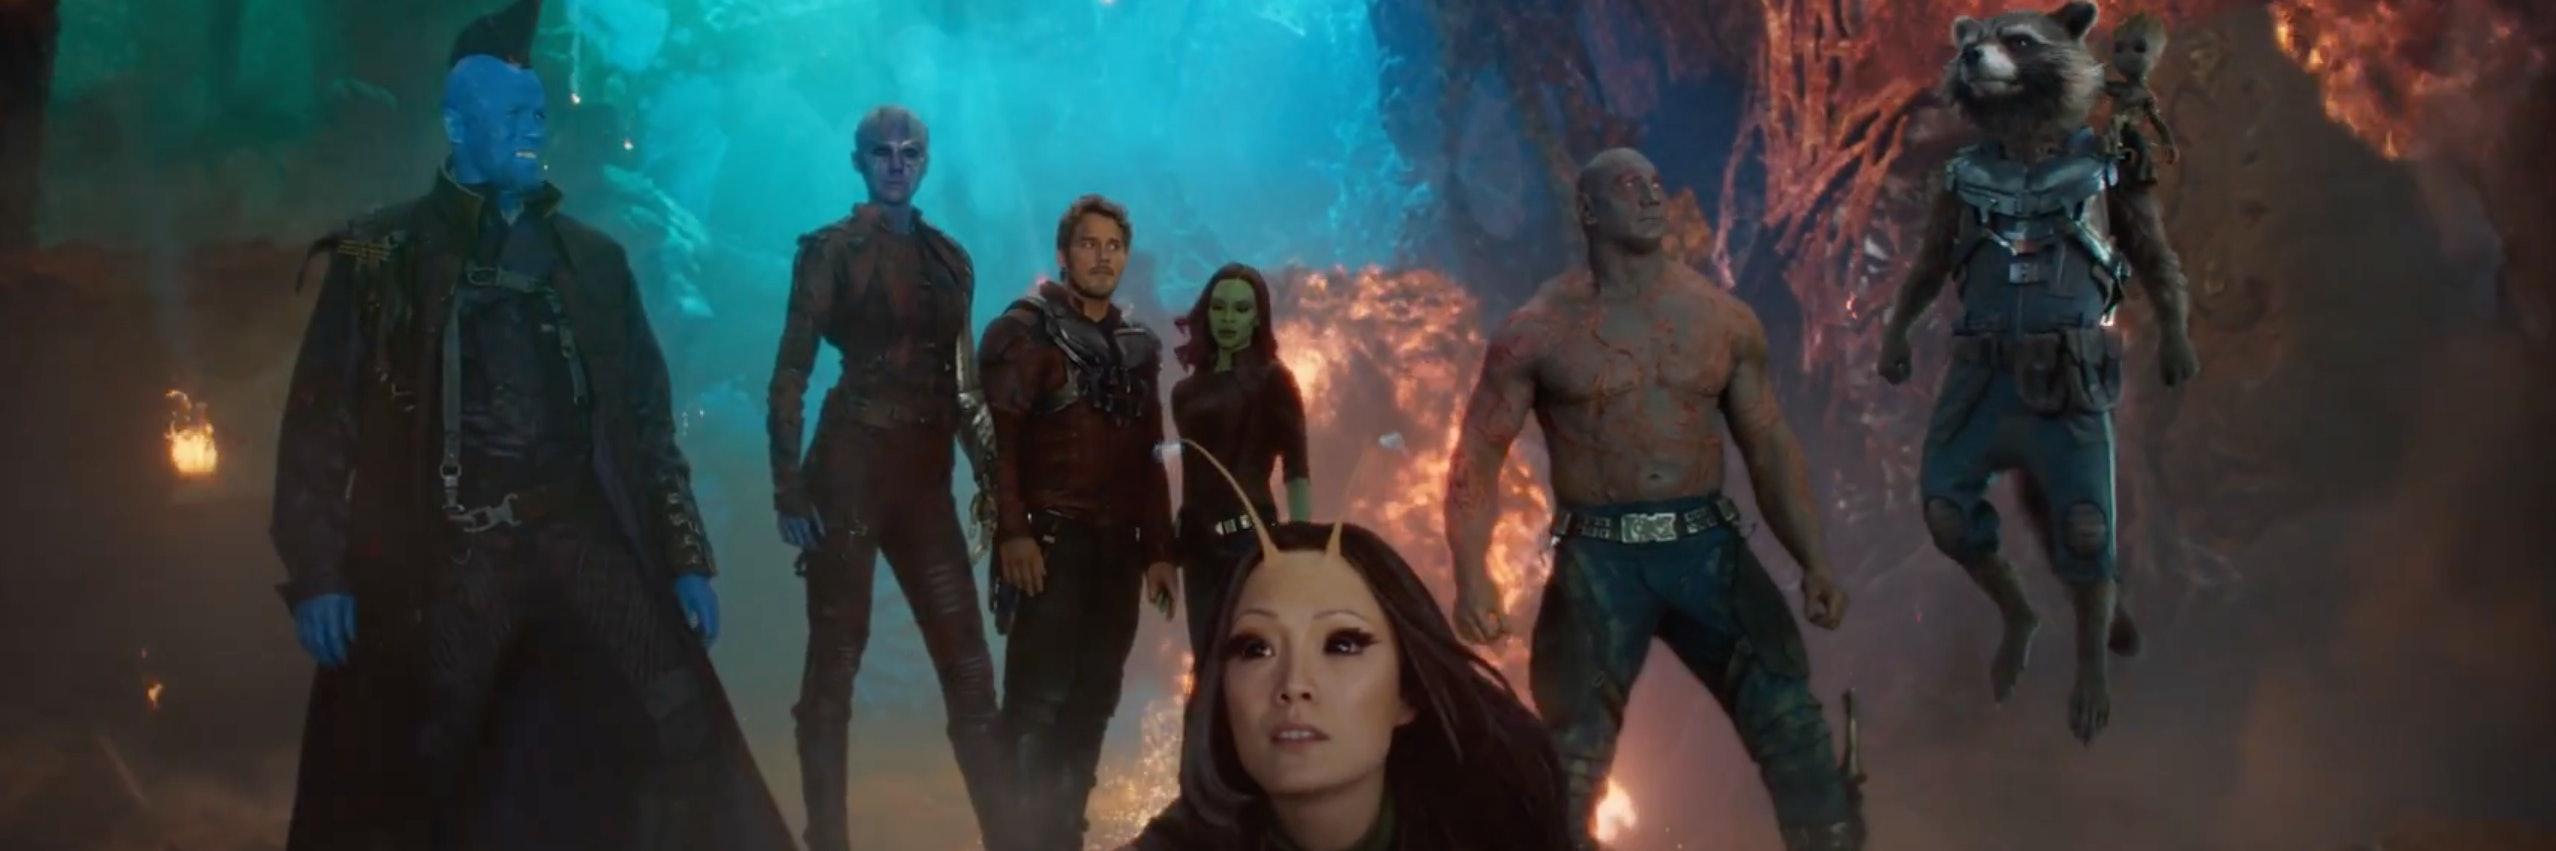 Guardians of the Galaxy Super Bowl Trailer